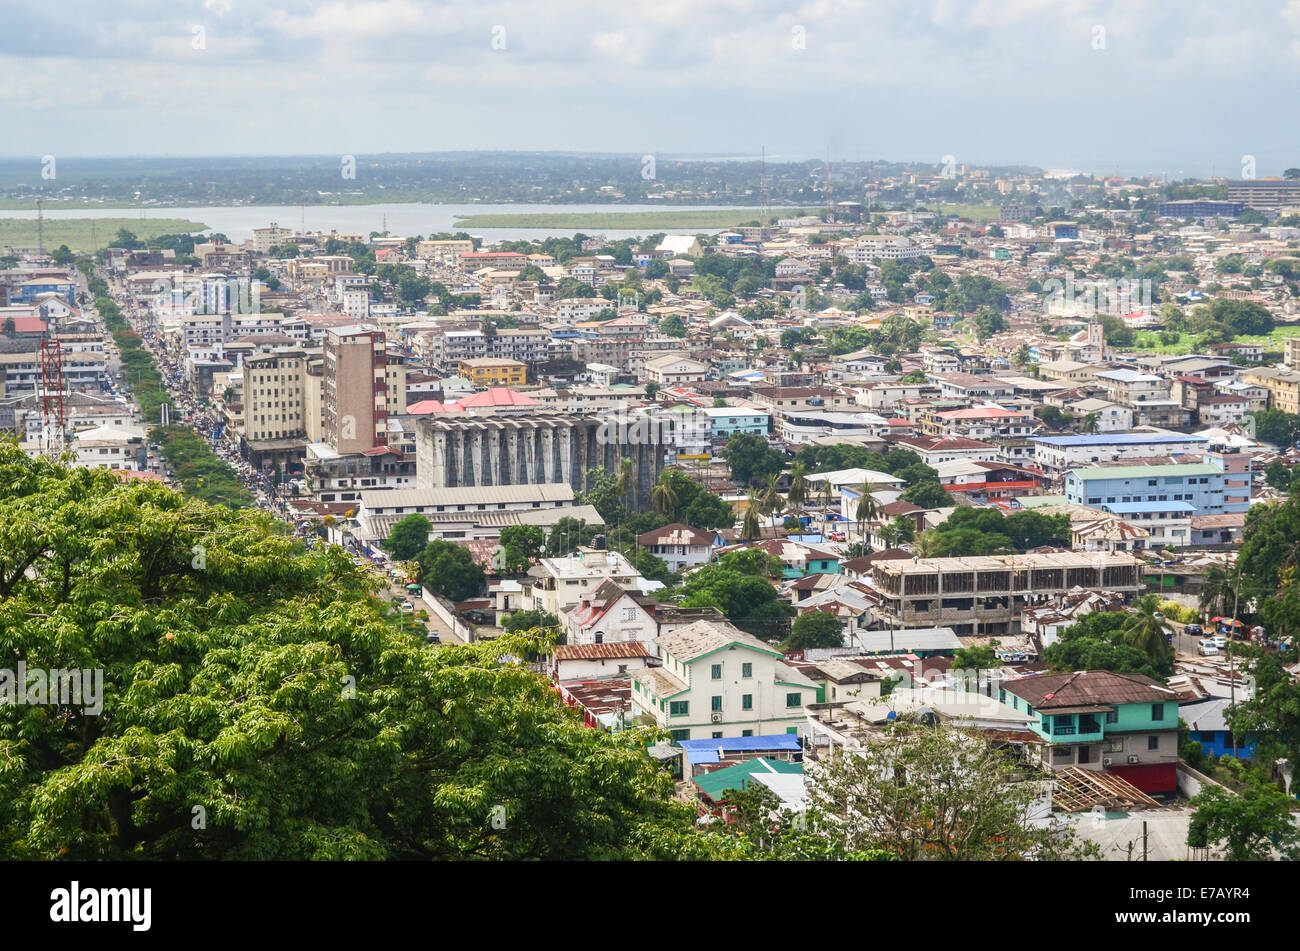 Aerial view of the city of Monrovia, Liberia, taken from the top of the ruins of Hotel Ducor, with the lagoon in - Stock Image